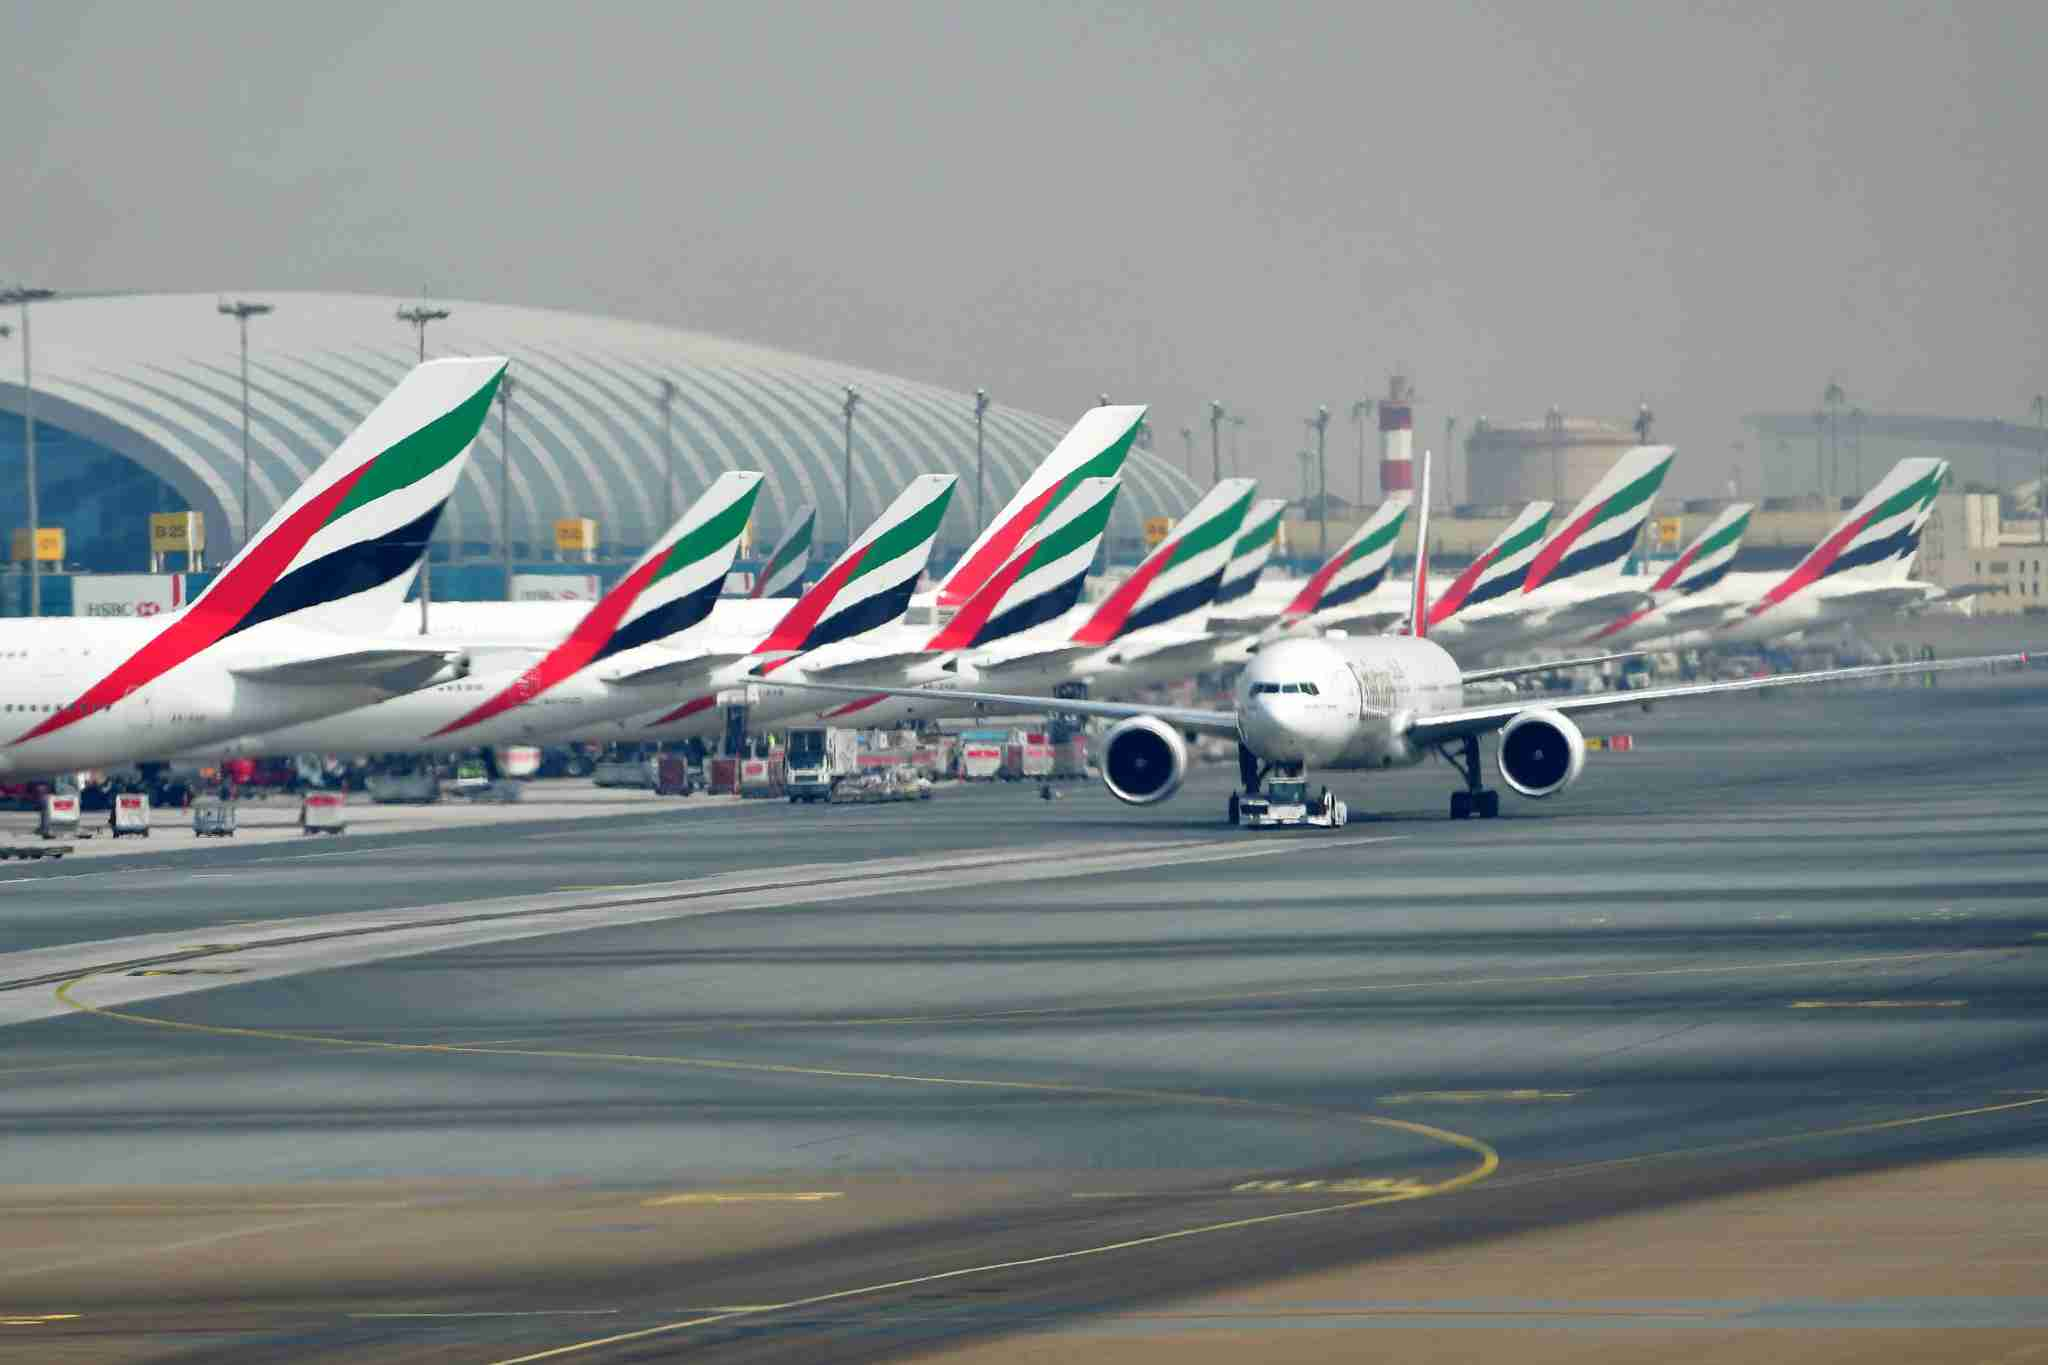 Dubai International Airport (DXB) (Image by GIUSEPPE CACACE/AFP/Getty Images)